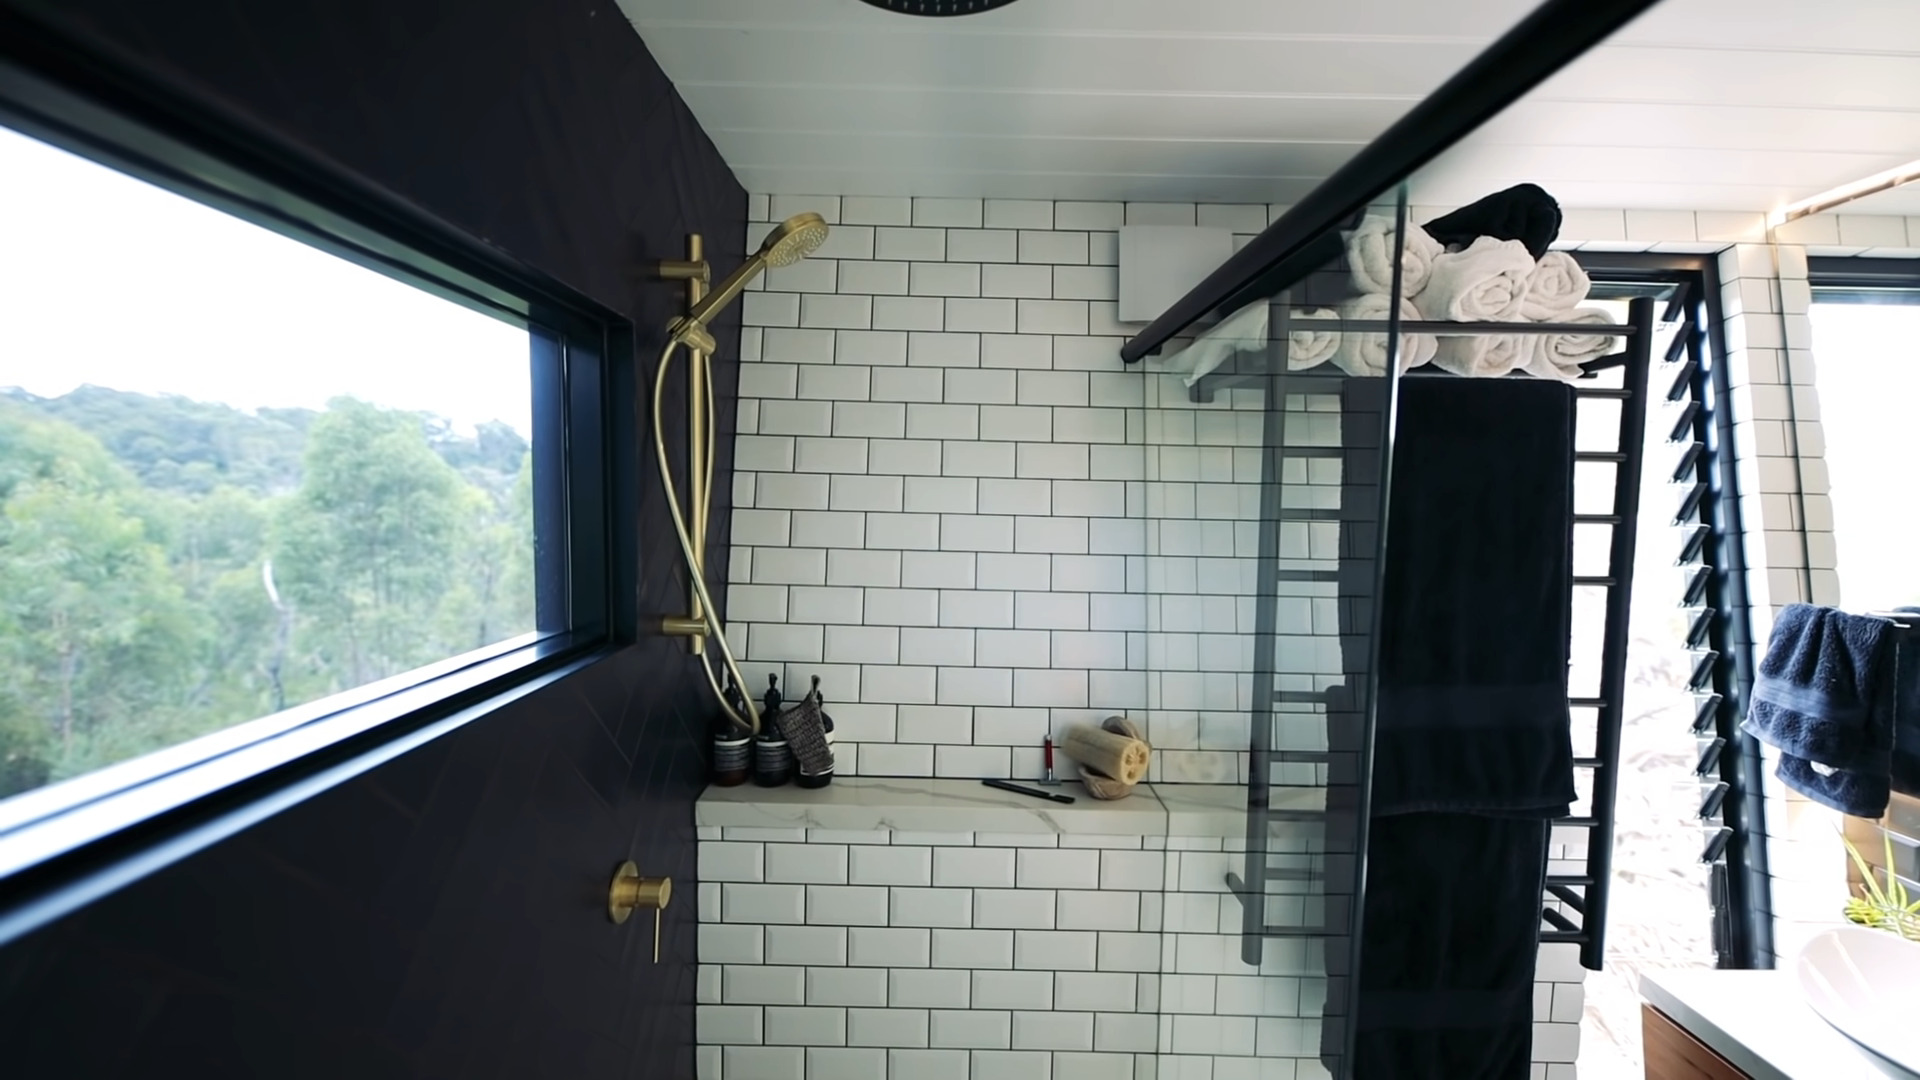 tiny house bathroom shower including white subway wall tiles and gold fixtures large window